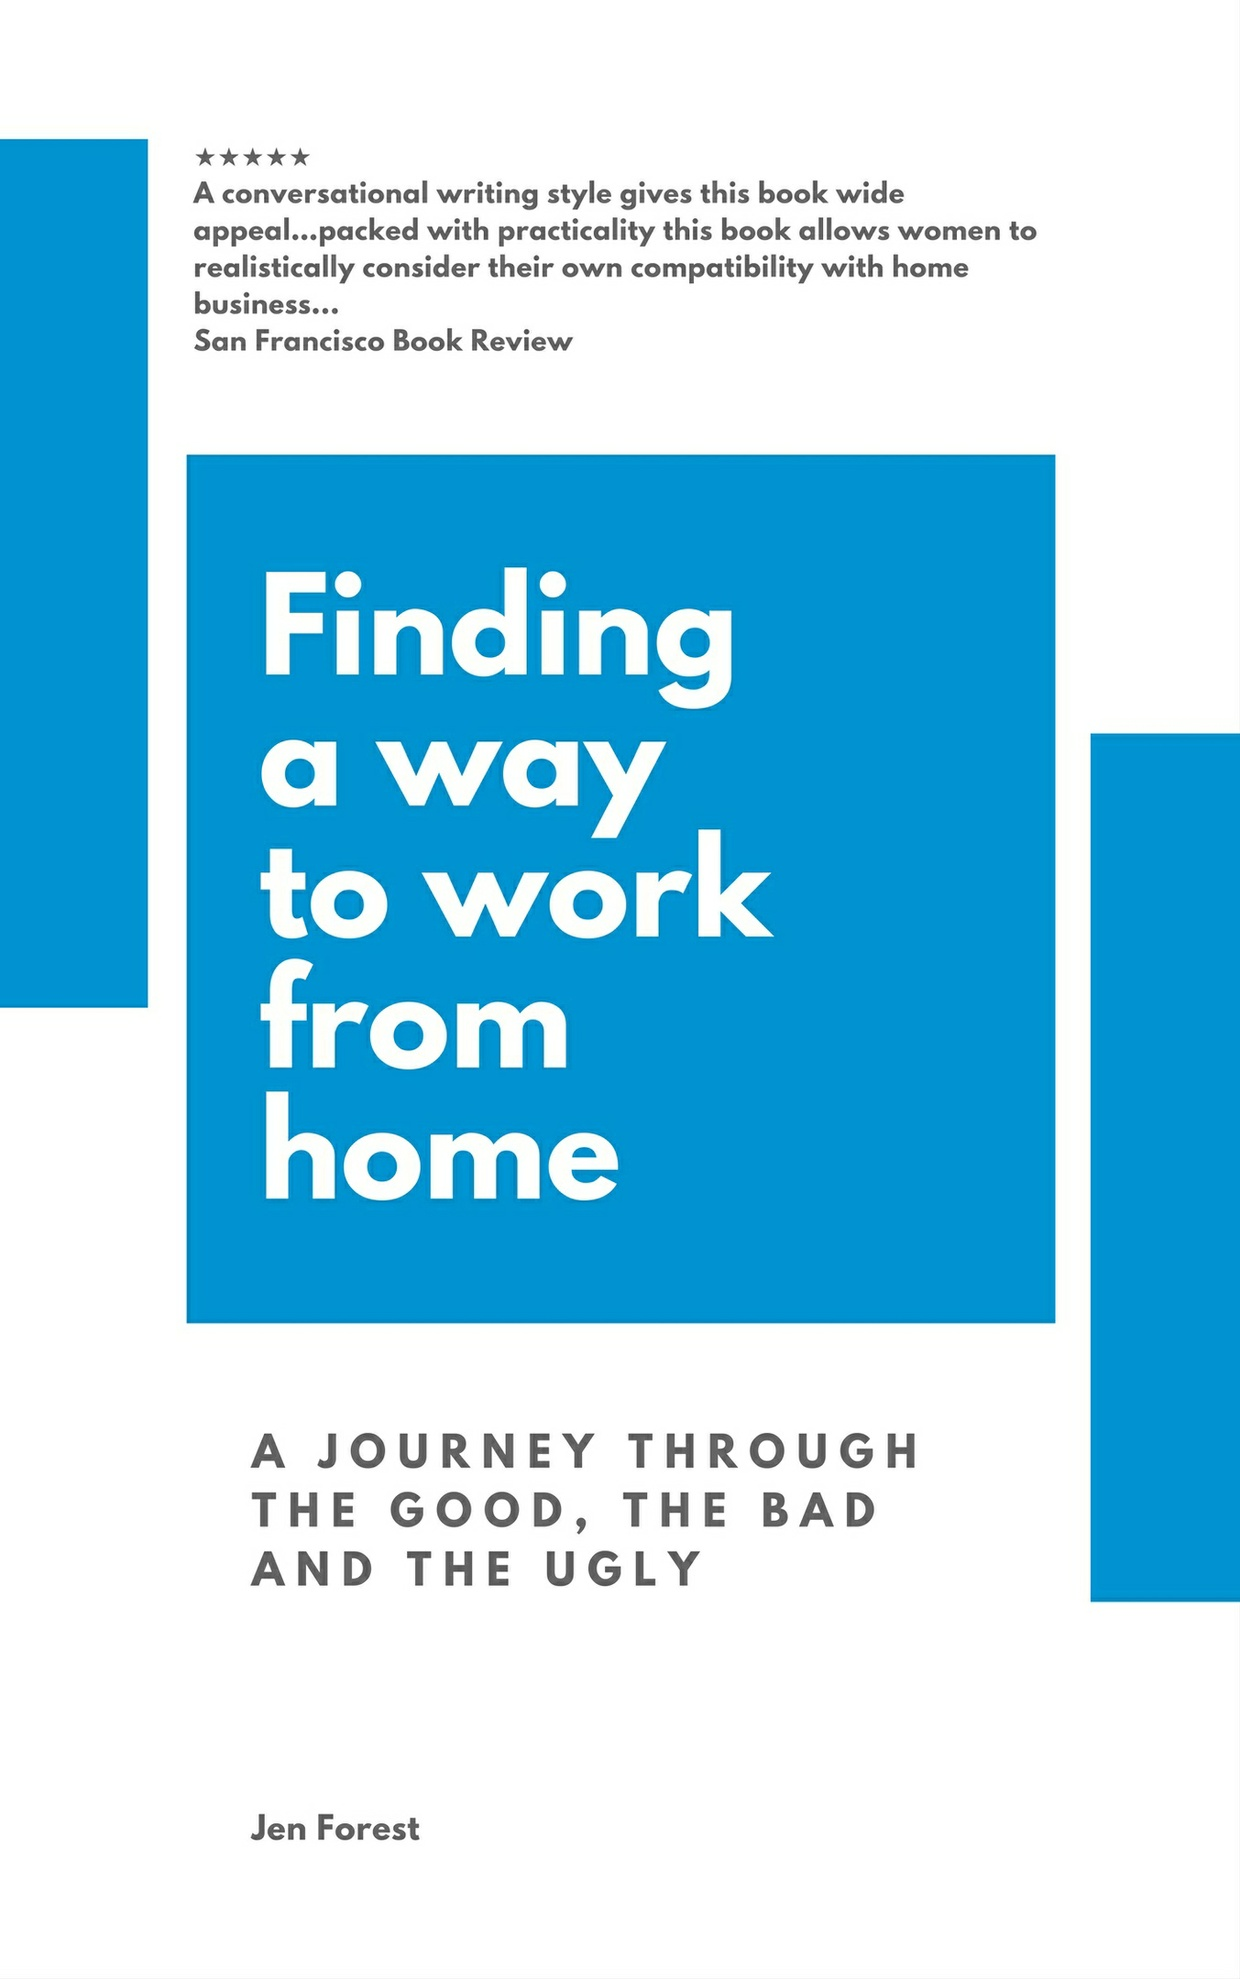 Finding a way to work from home - a journey through the good, the bad and the ugly